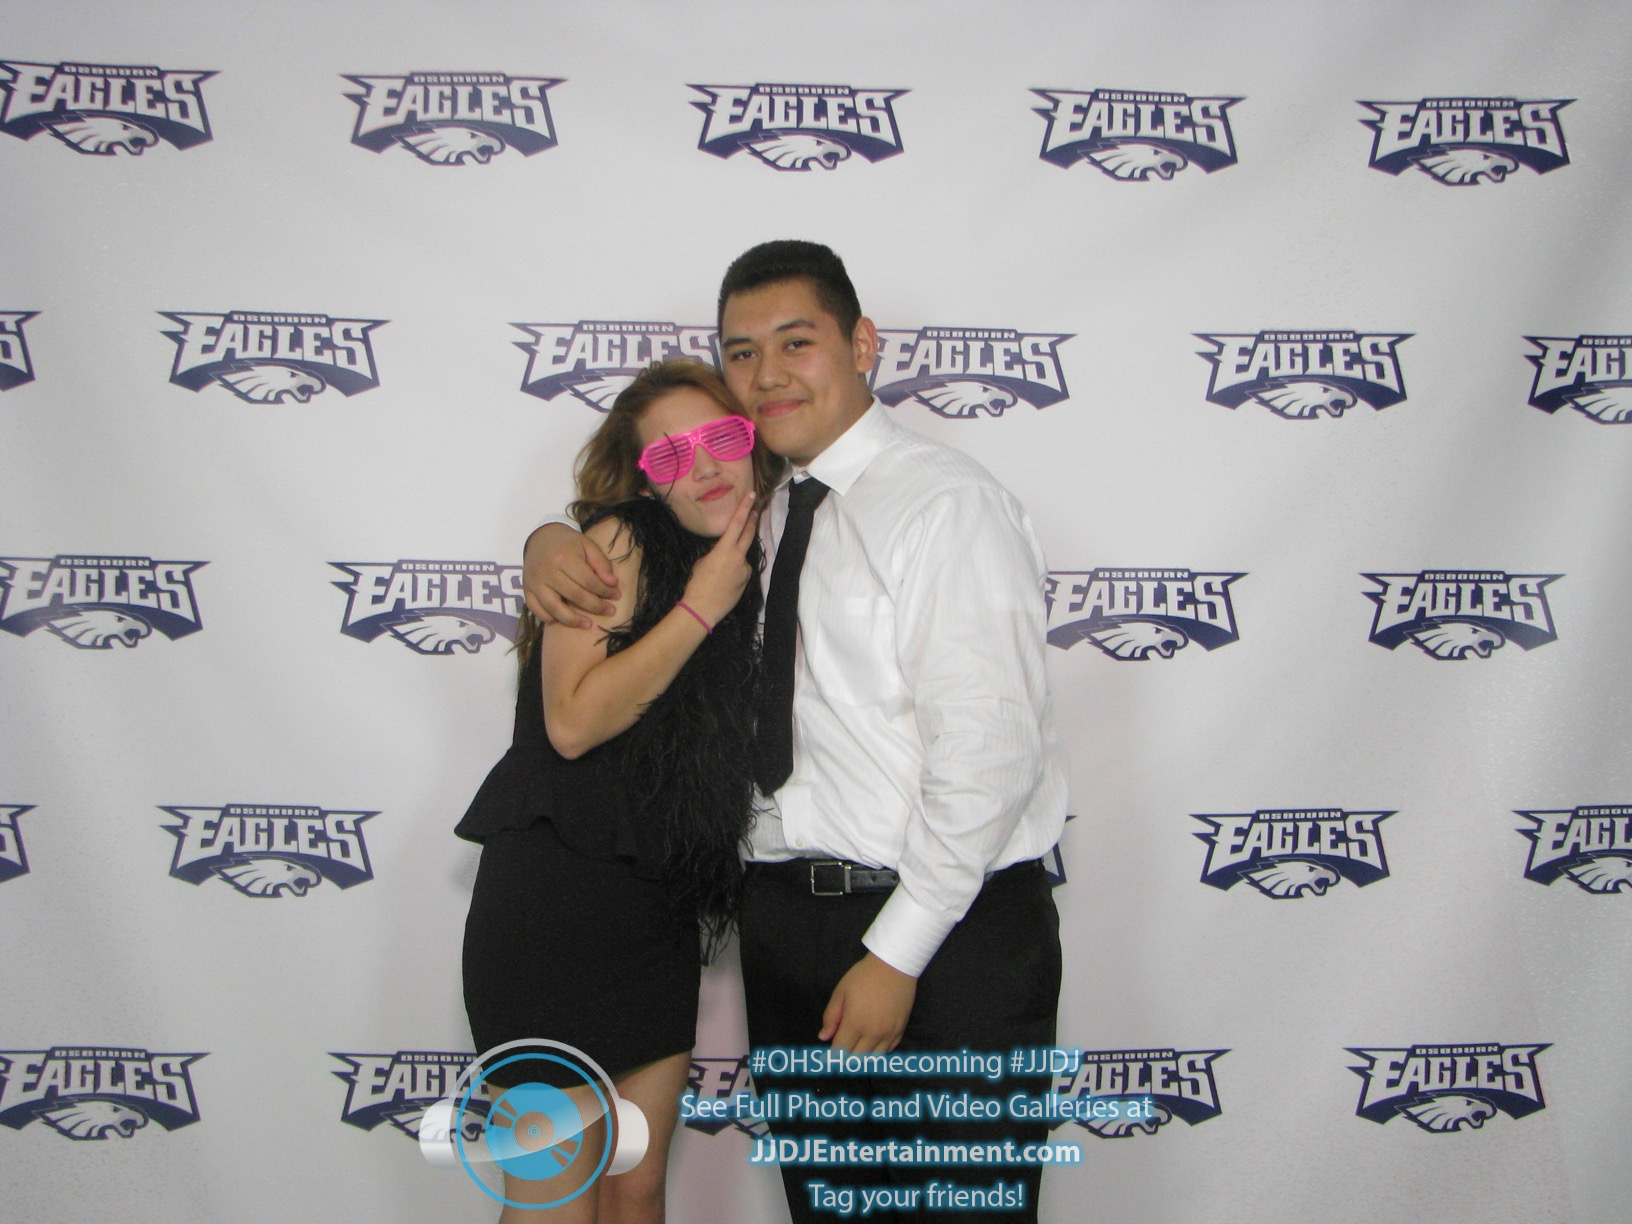 OHS 2014 Homecoming Photobooth -110